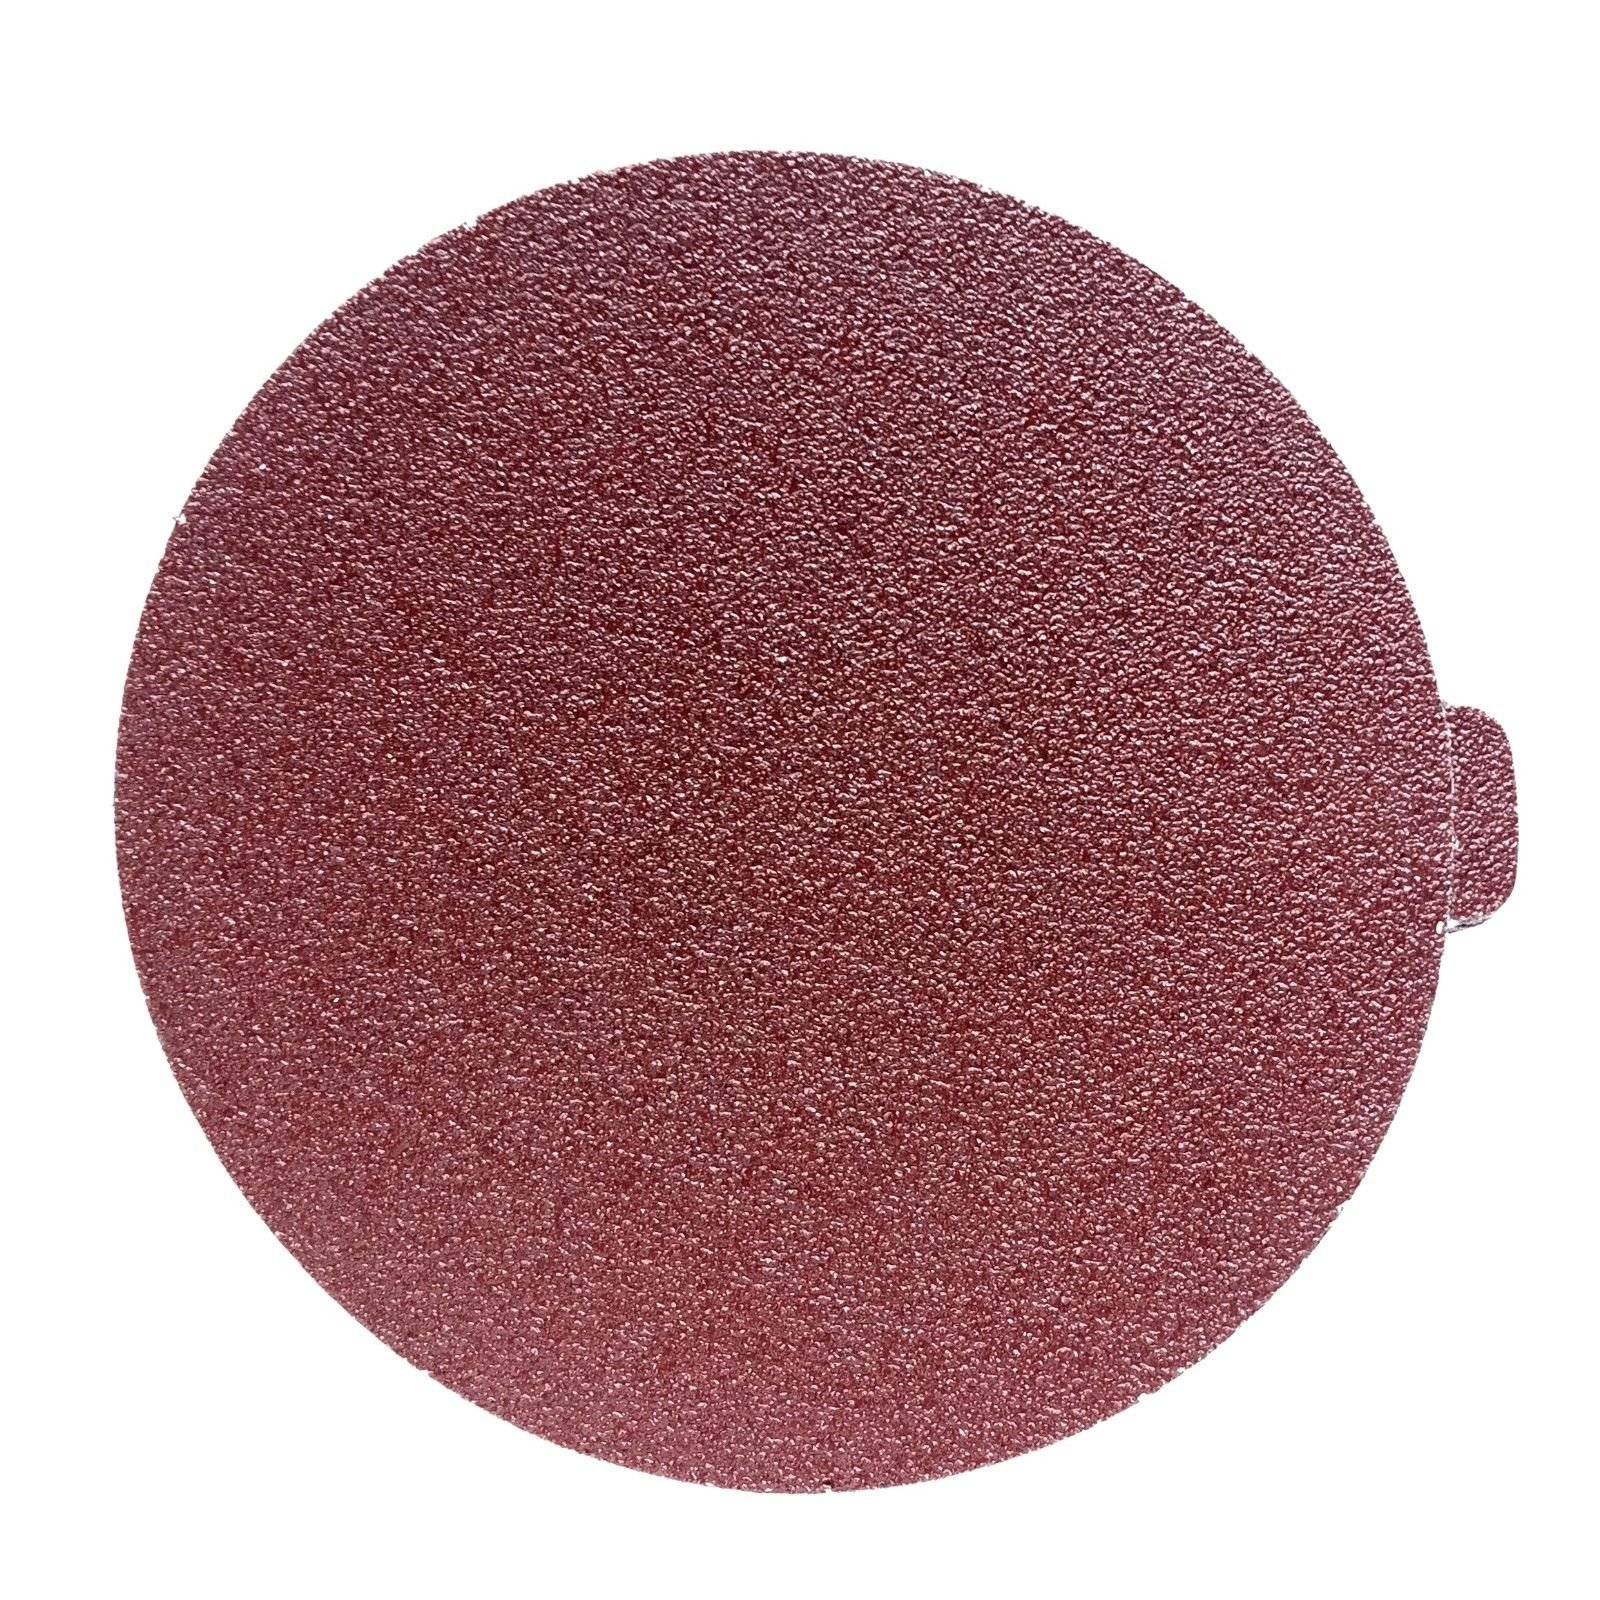 8 Inch Heavy Duty Adhesive Sticky Back Tabbed Sanding Discs (25 Pack, 36 Grit) by Abrasive Resource